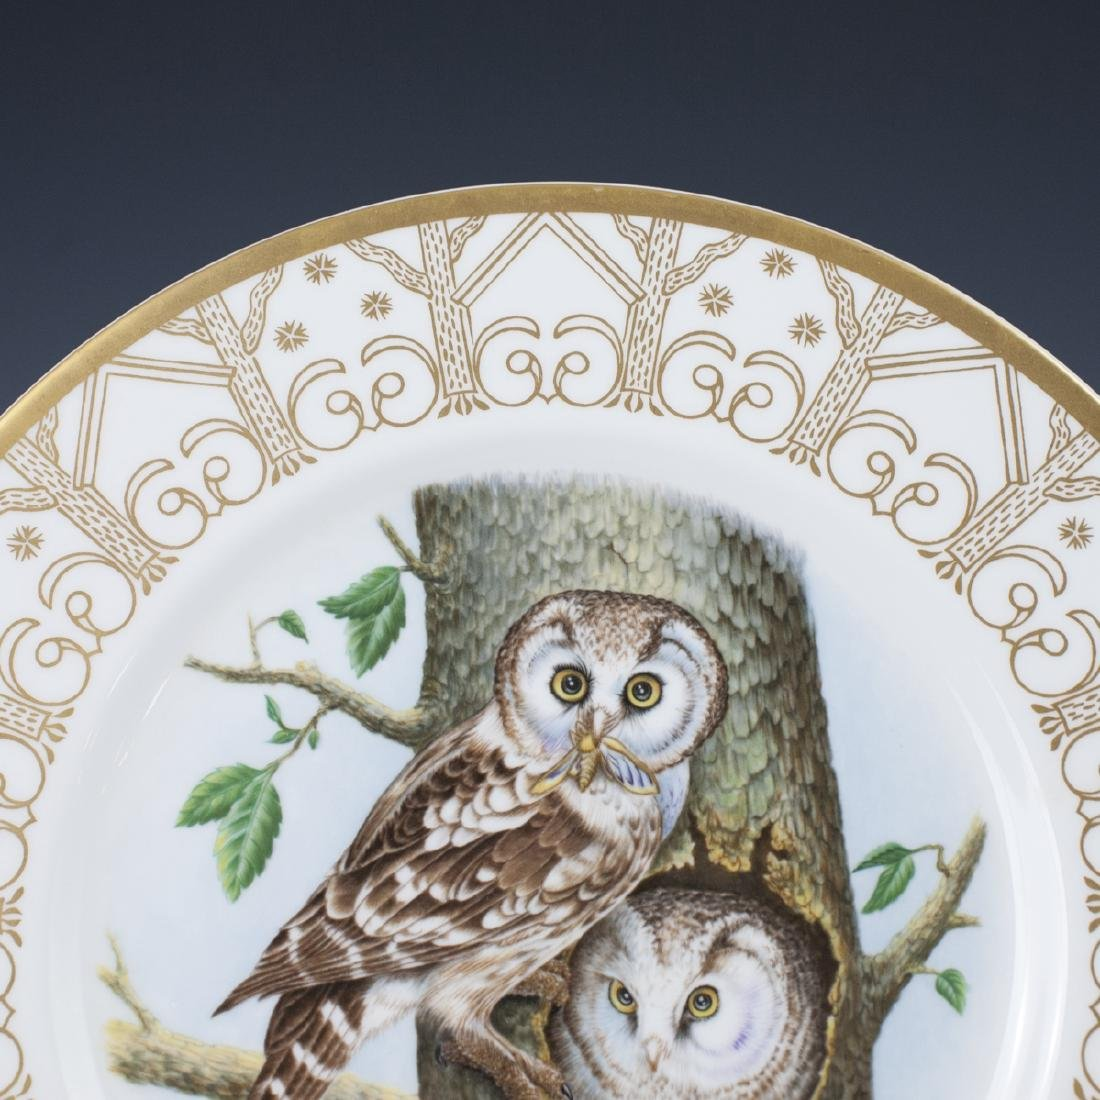 Edward Marshall Boehm Owl Plate Collection - 2